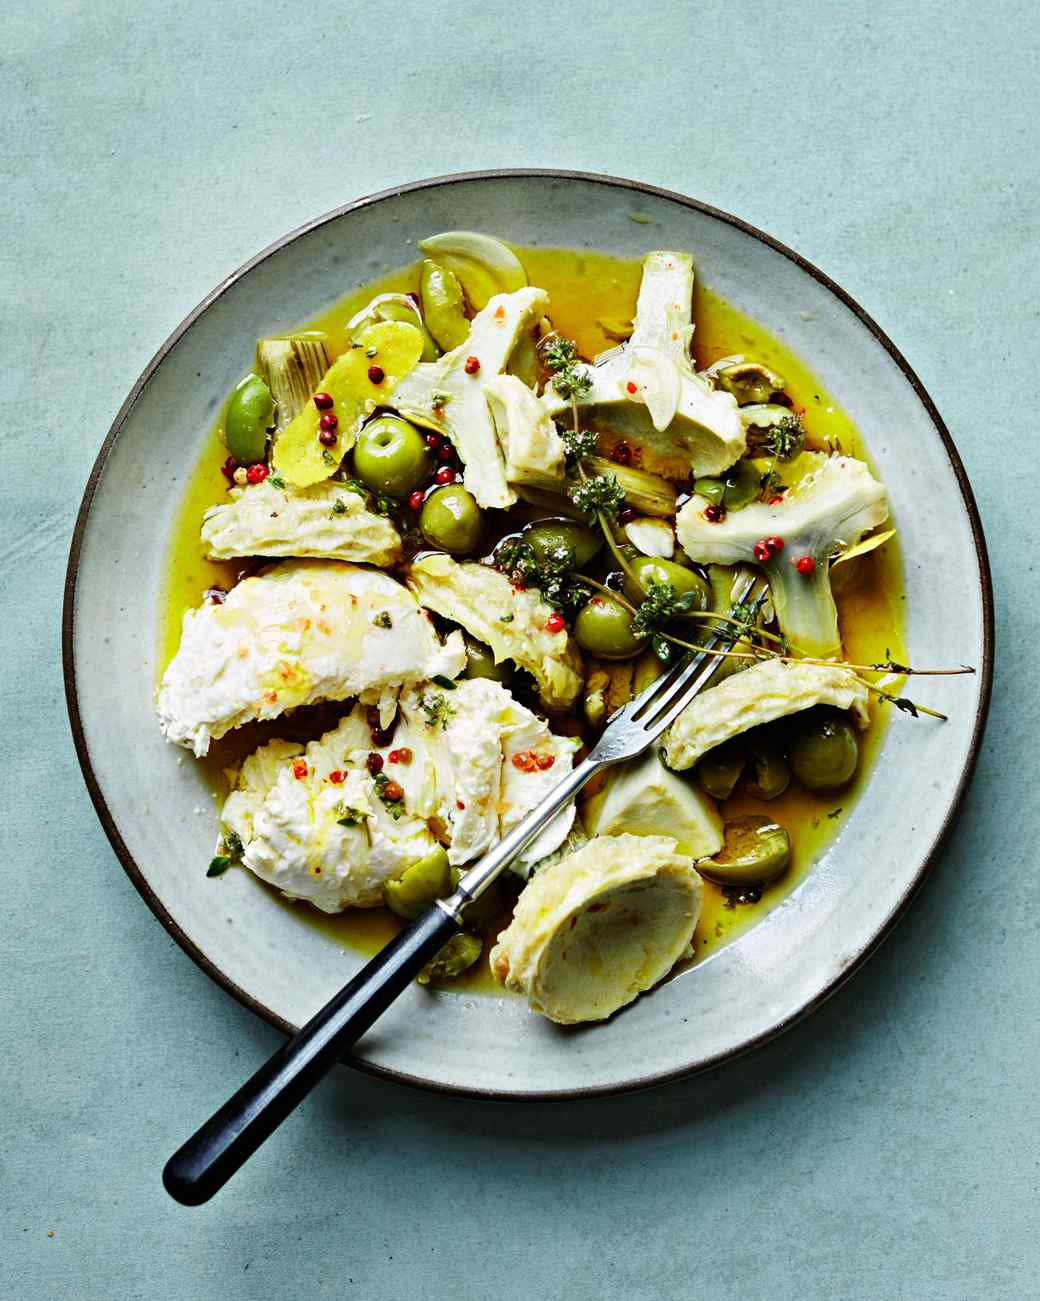 Seven Fresh Spring Recipes Inspired by the Farmers' Market